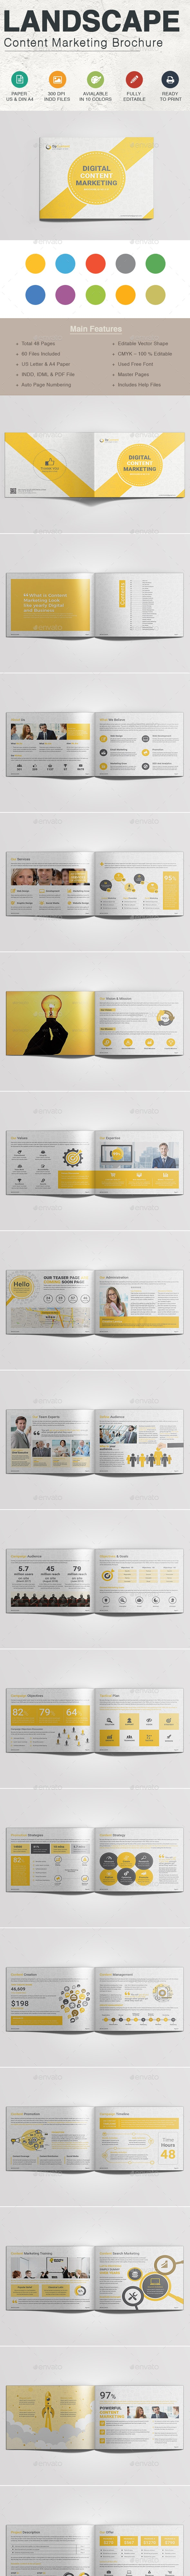 Landscape Content Marketing Brochure - Corporate Brochures